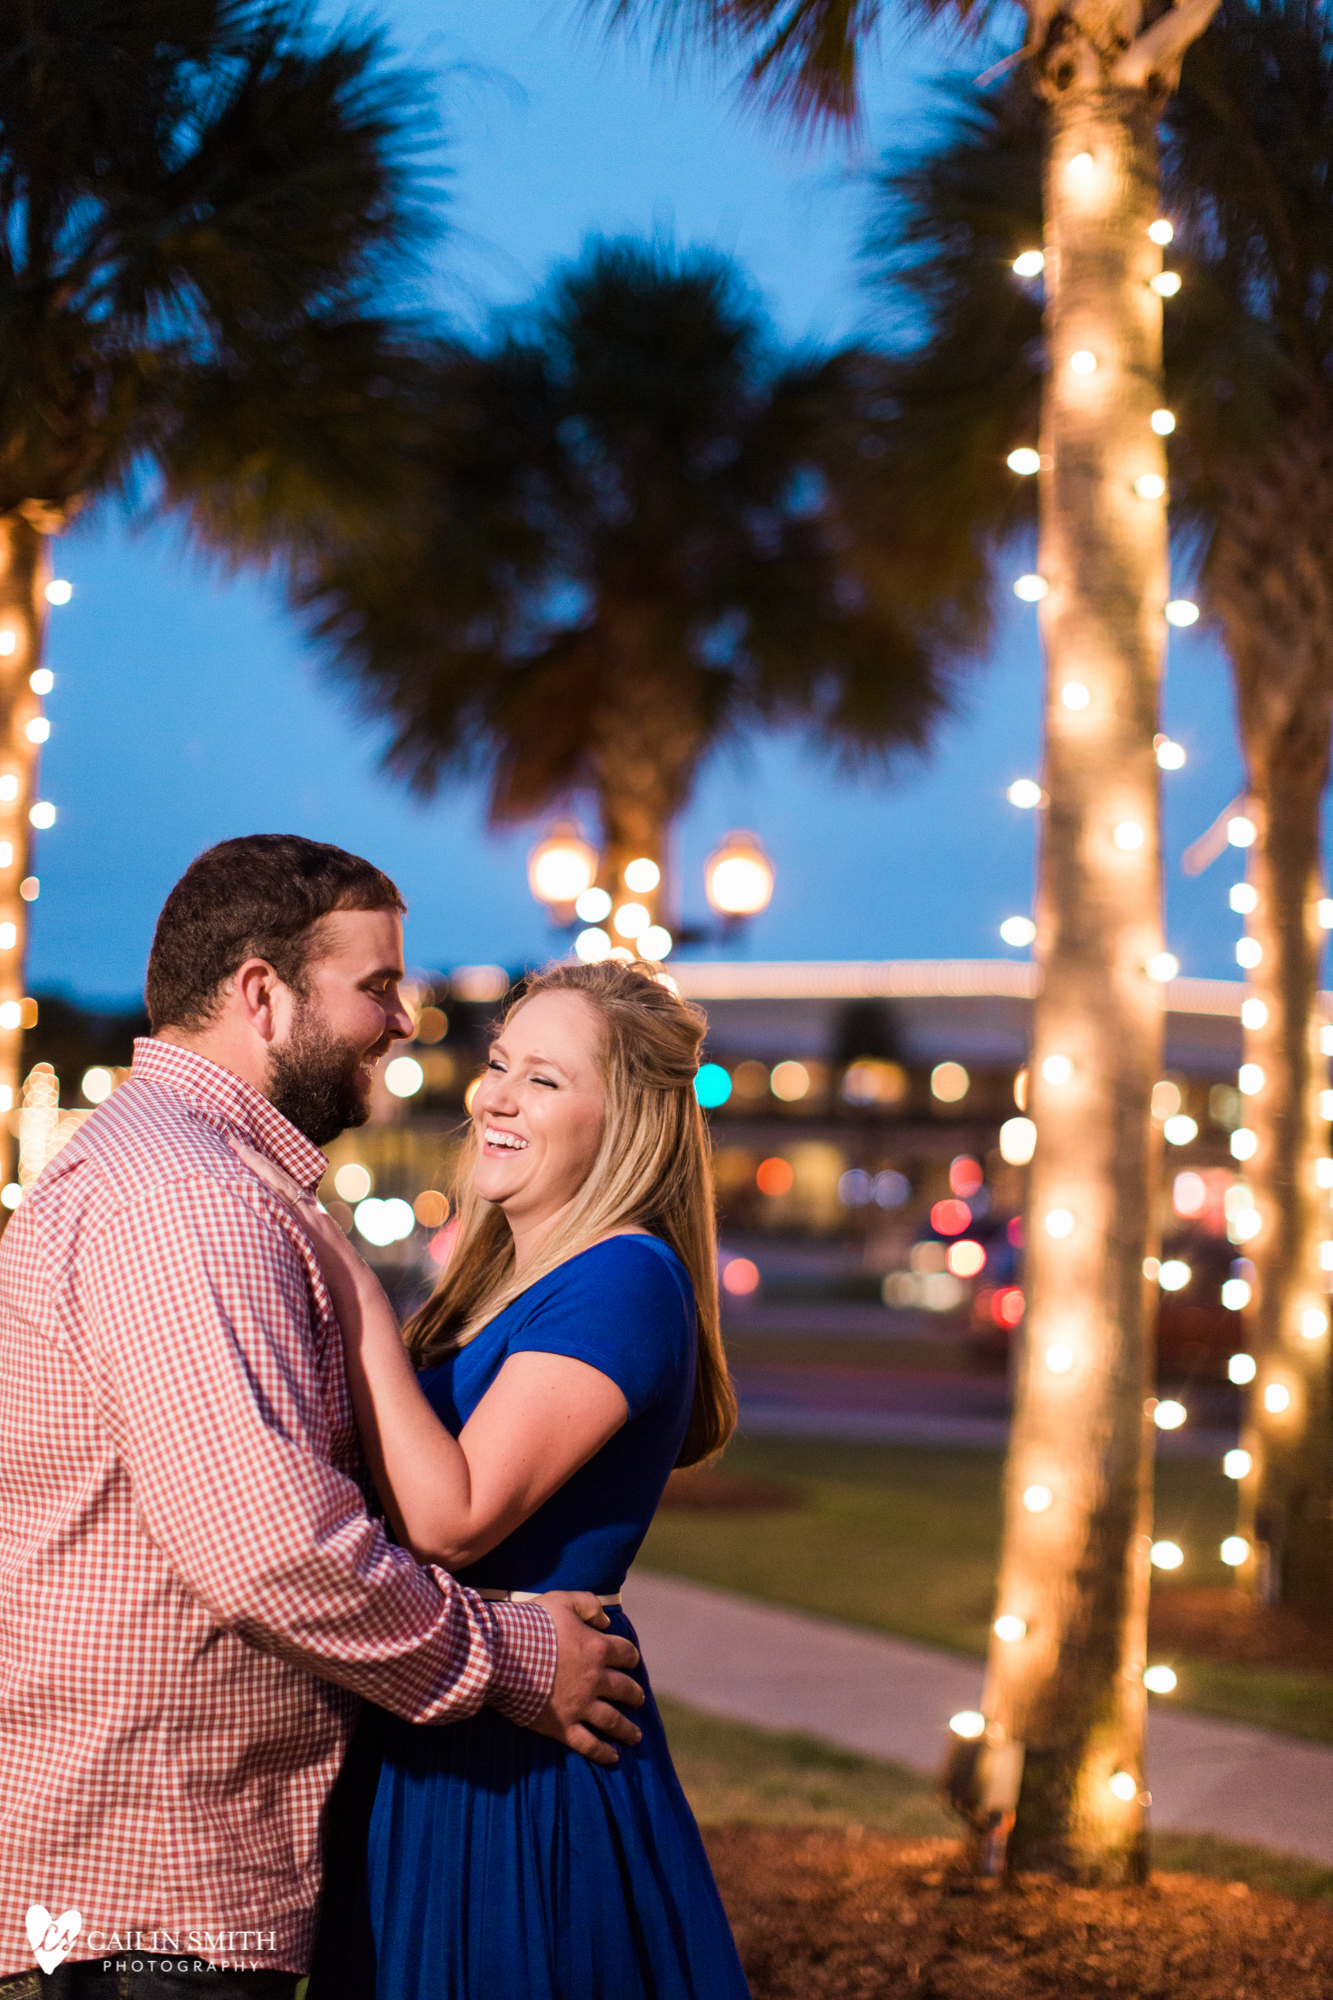 Shari_Brent_St_Augustine_Engagement_Photography_025.jpg